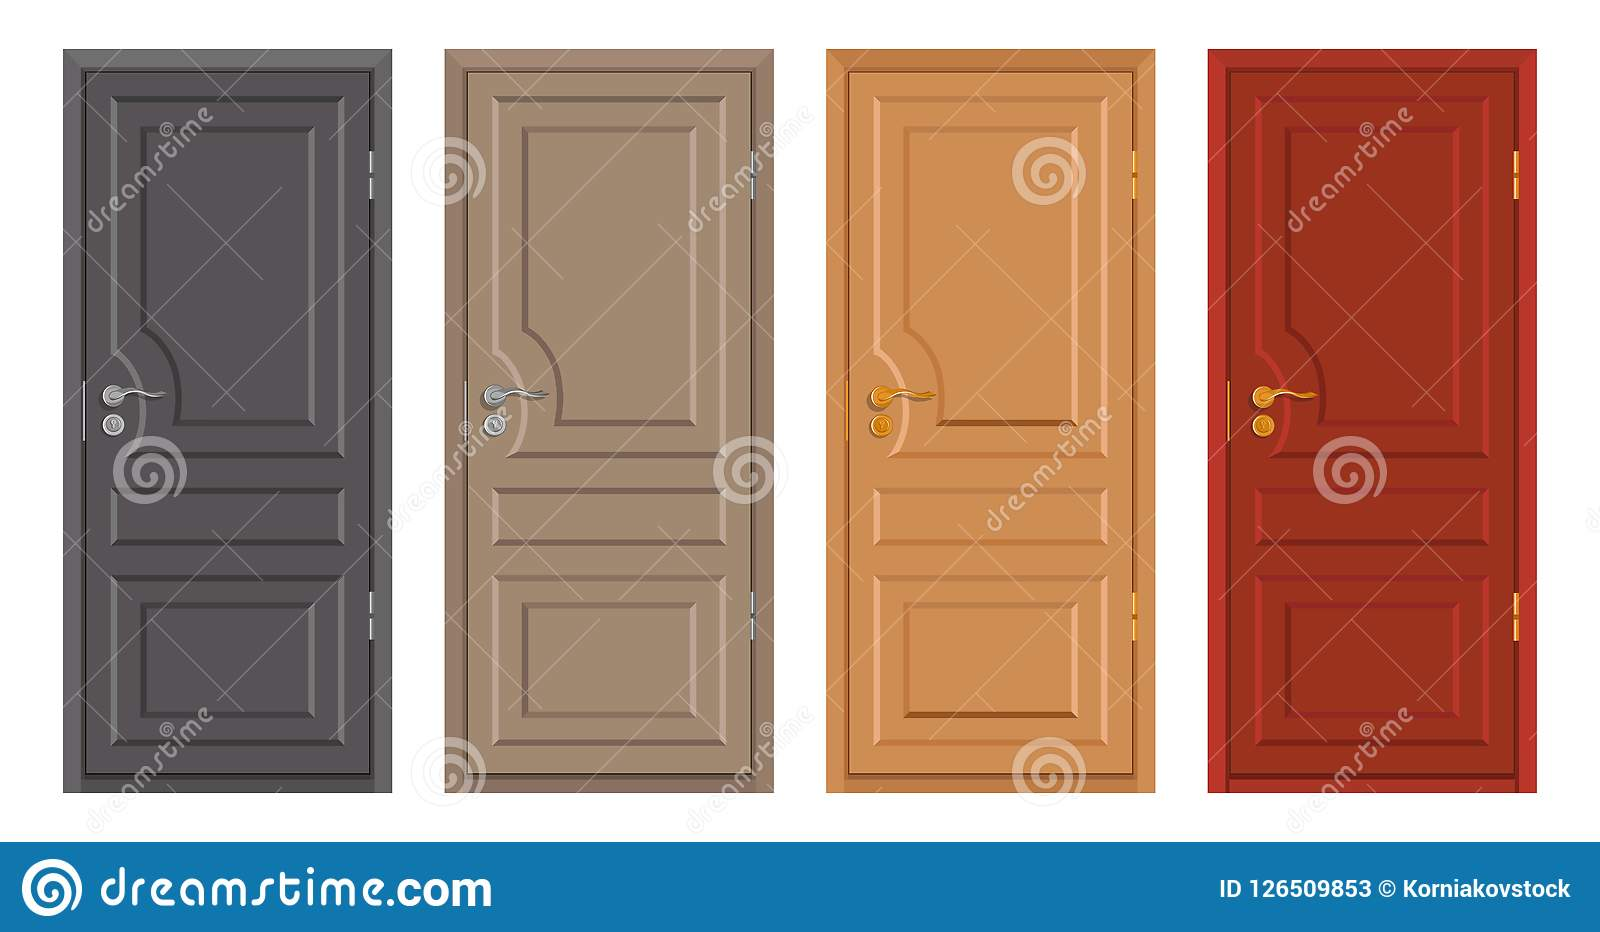 Colored Wooden Doors Isolated On White Background, Realistic Wooden Door,  Colour Illustration Of Different Door Design, Office Interior Or Exterior  Element, ...